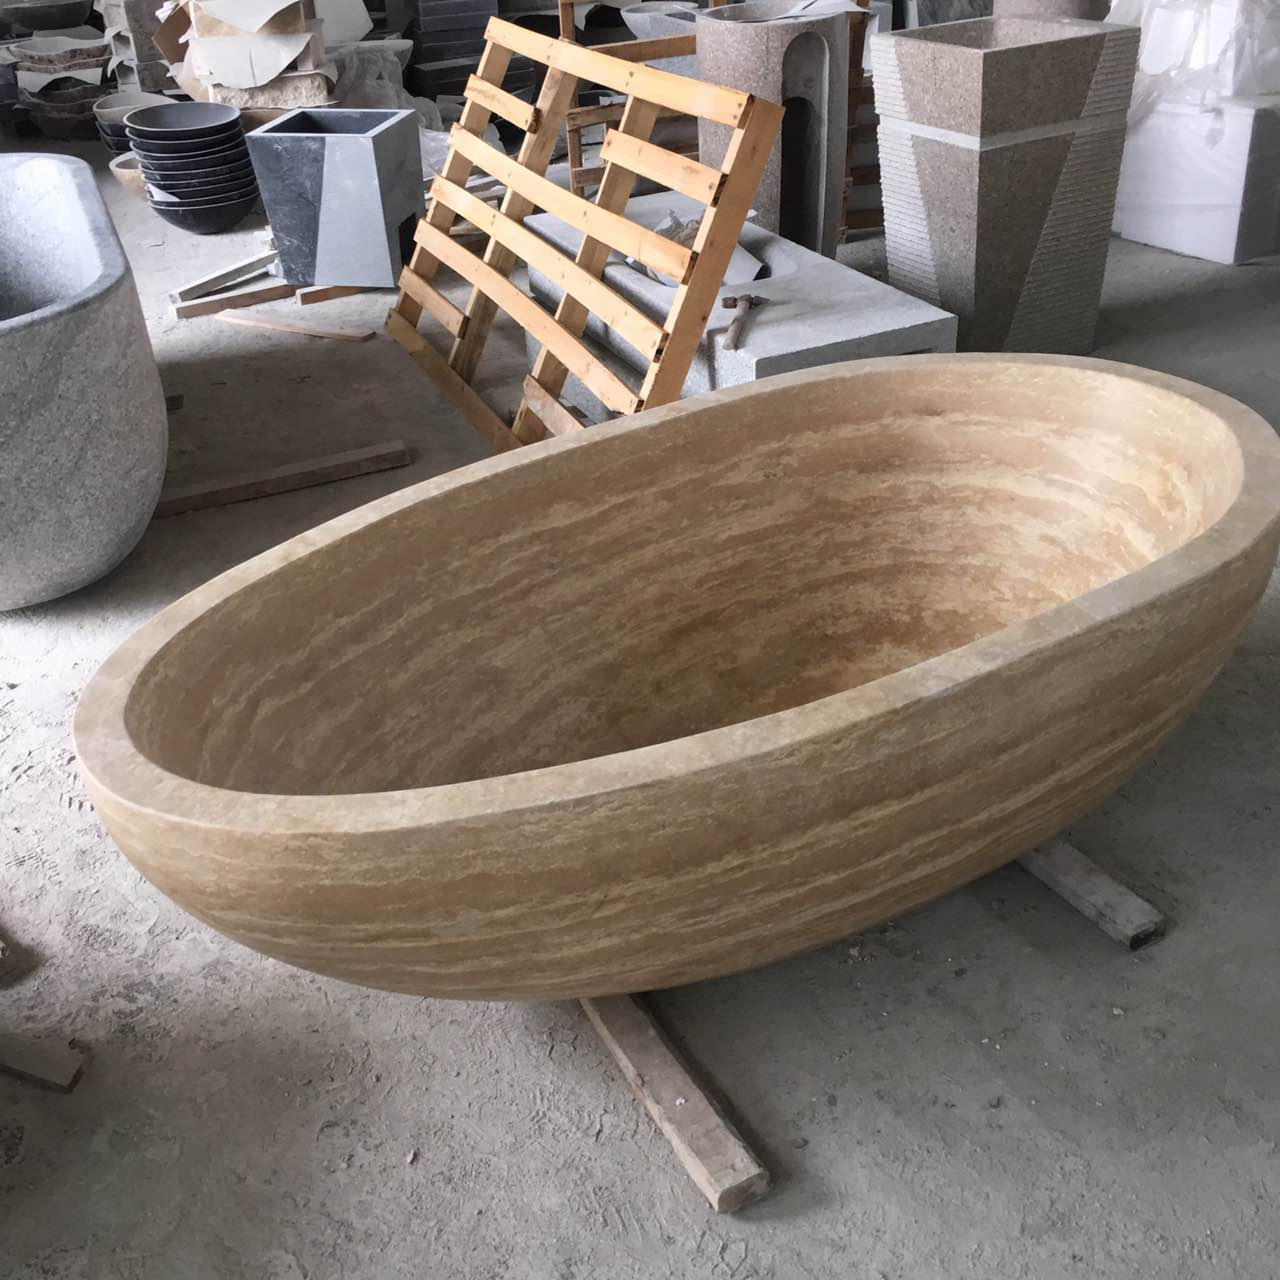 Travertine bathtub